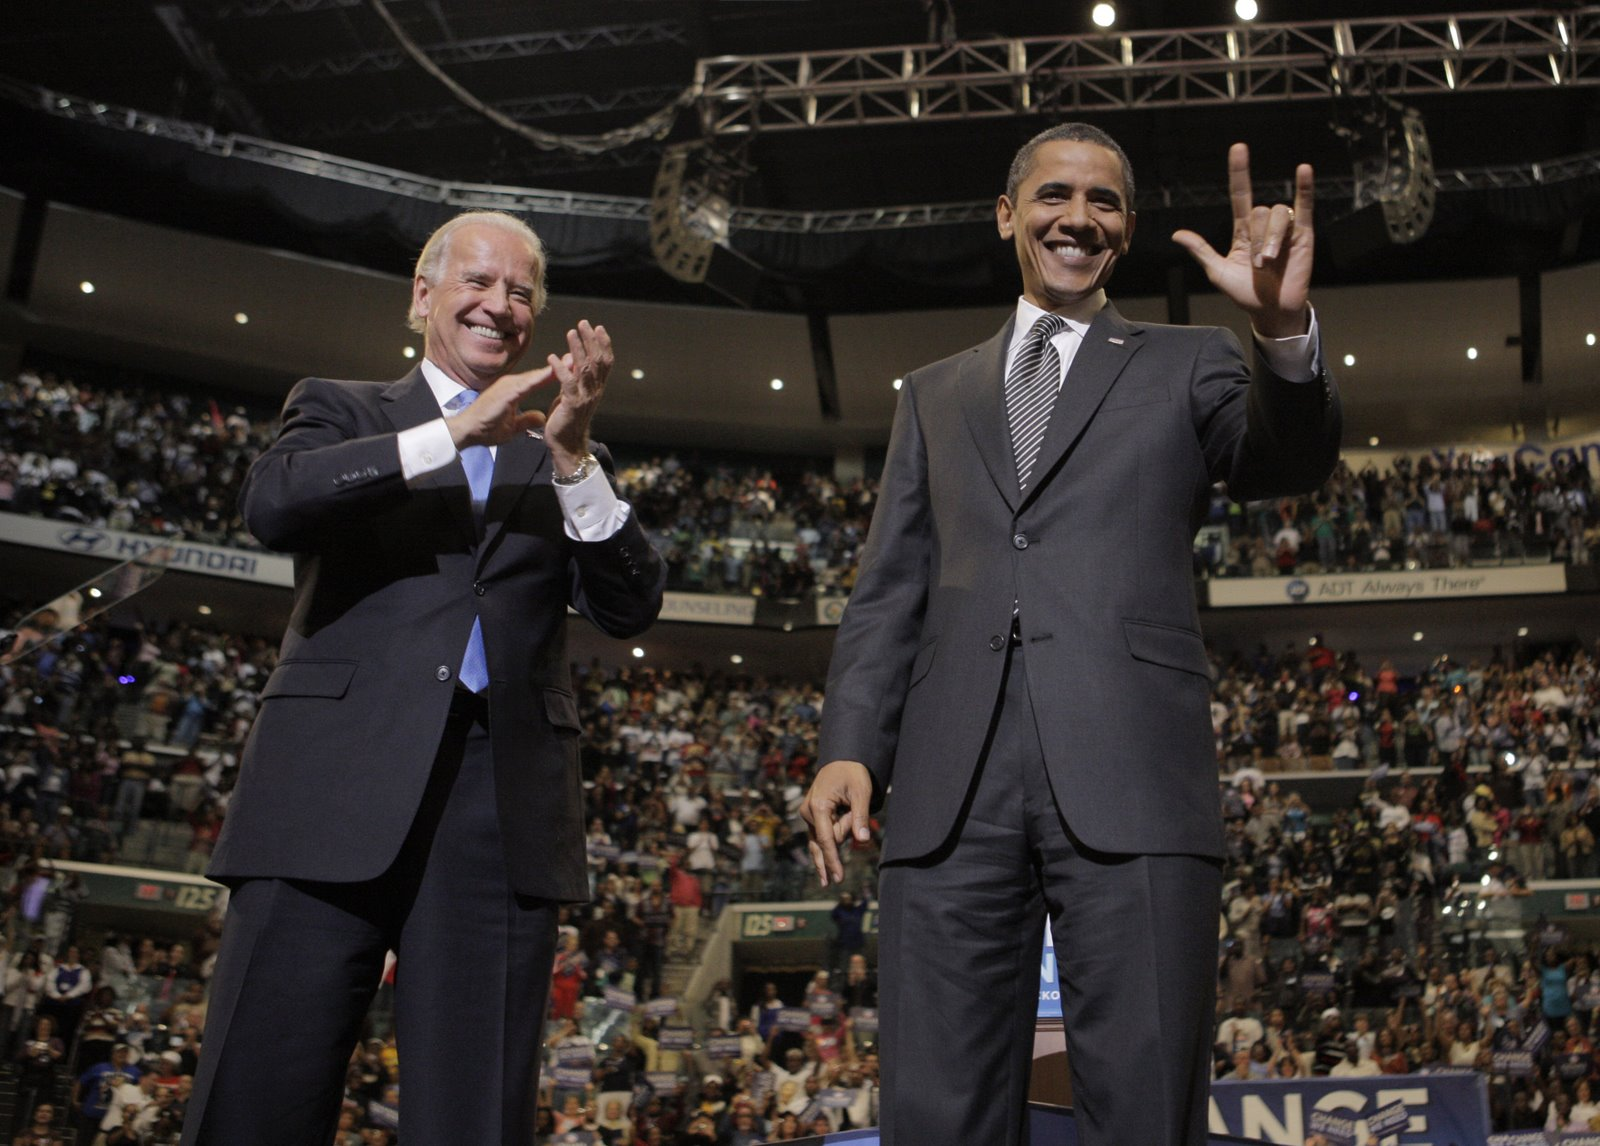 Democratic presidential candidate Sen. Barack Obama, D-Ill., right, flashes a sign as he is joined by his vice presidential running mate Sen. Joe Biden, D-Del., at a rally in Sunrise, Fla., Wednesday, Oct. 29, 2008. (AP Photo/Jae C. Hong)